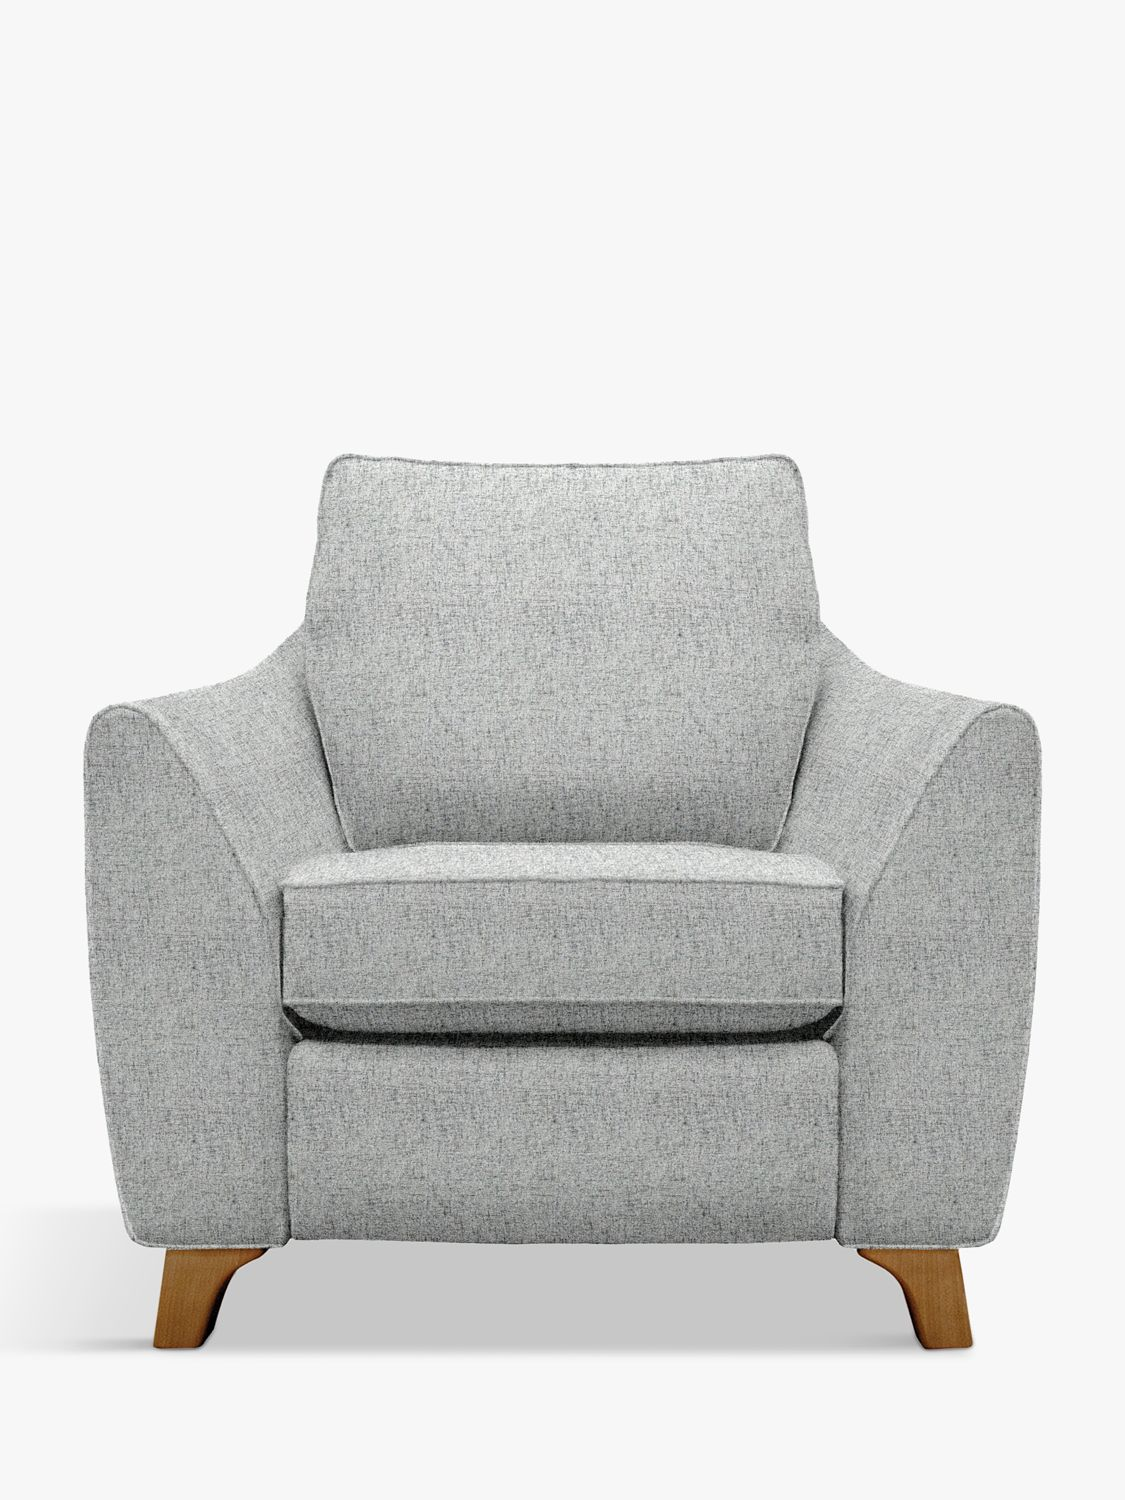 G Plan Vintage G Plan Vintage The Sixty Eight Armchair with Footrest Mechanism, Sorren Grey